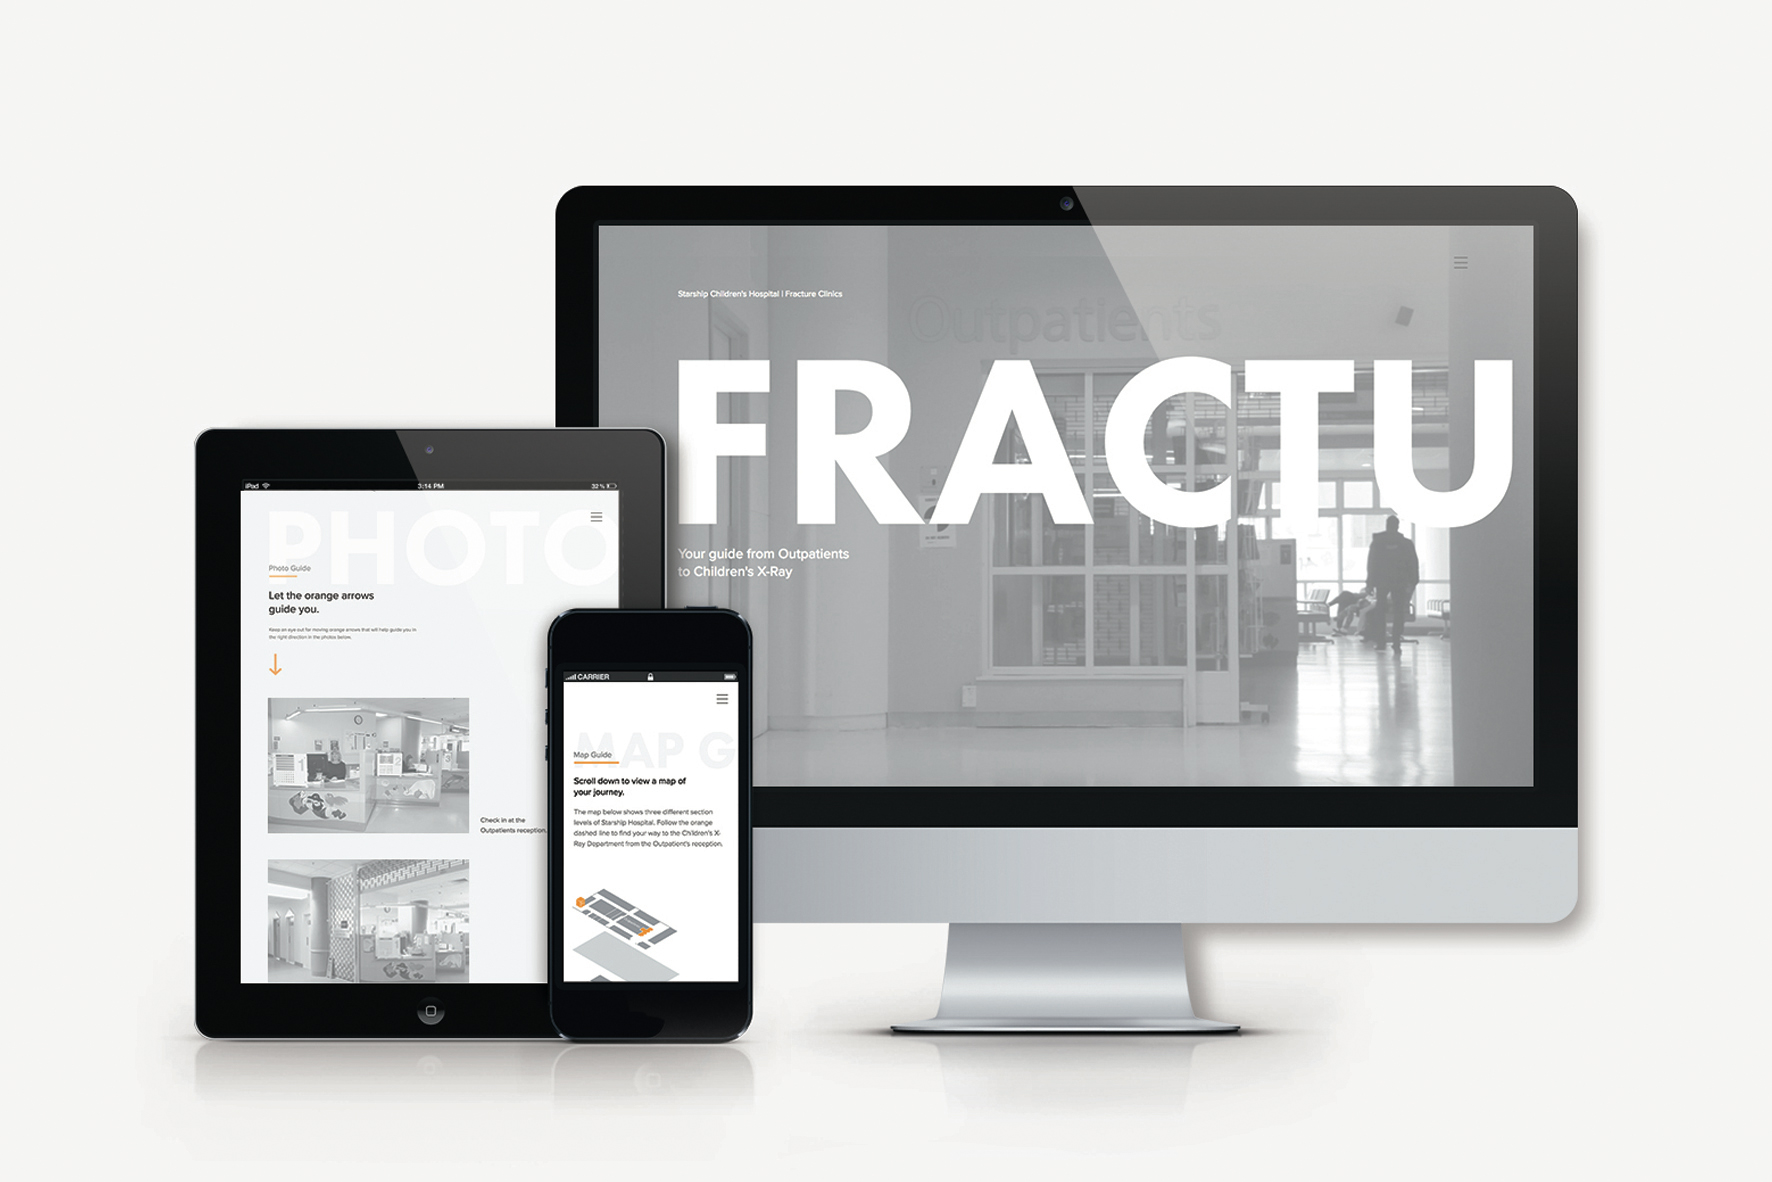 Fracture Clinic   An undergraduate communication designer developed an online resource to help patients find their way around the fracture clinic.